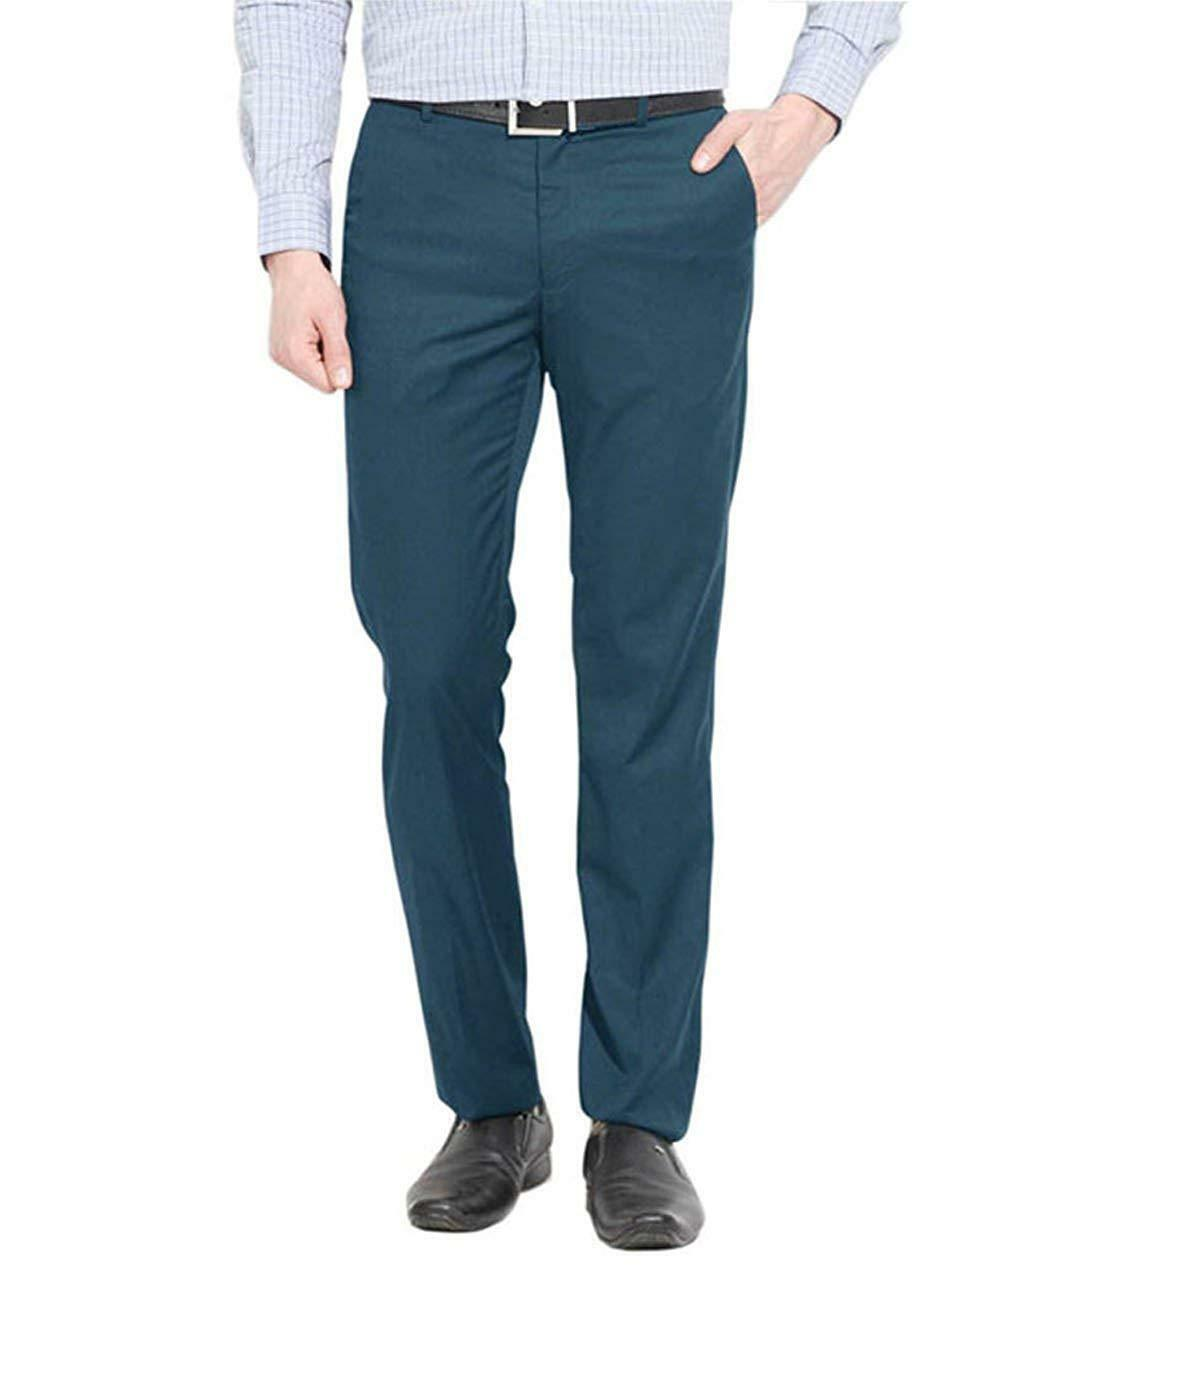 Men'S Pleat-Front Pants Formal Fit Full Length Stretch Office Wedding Trousers